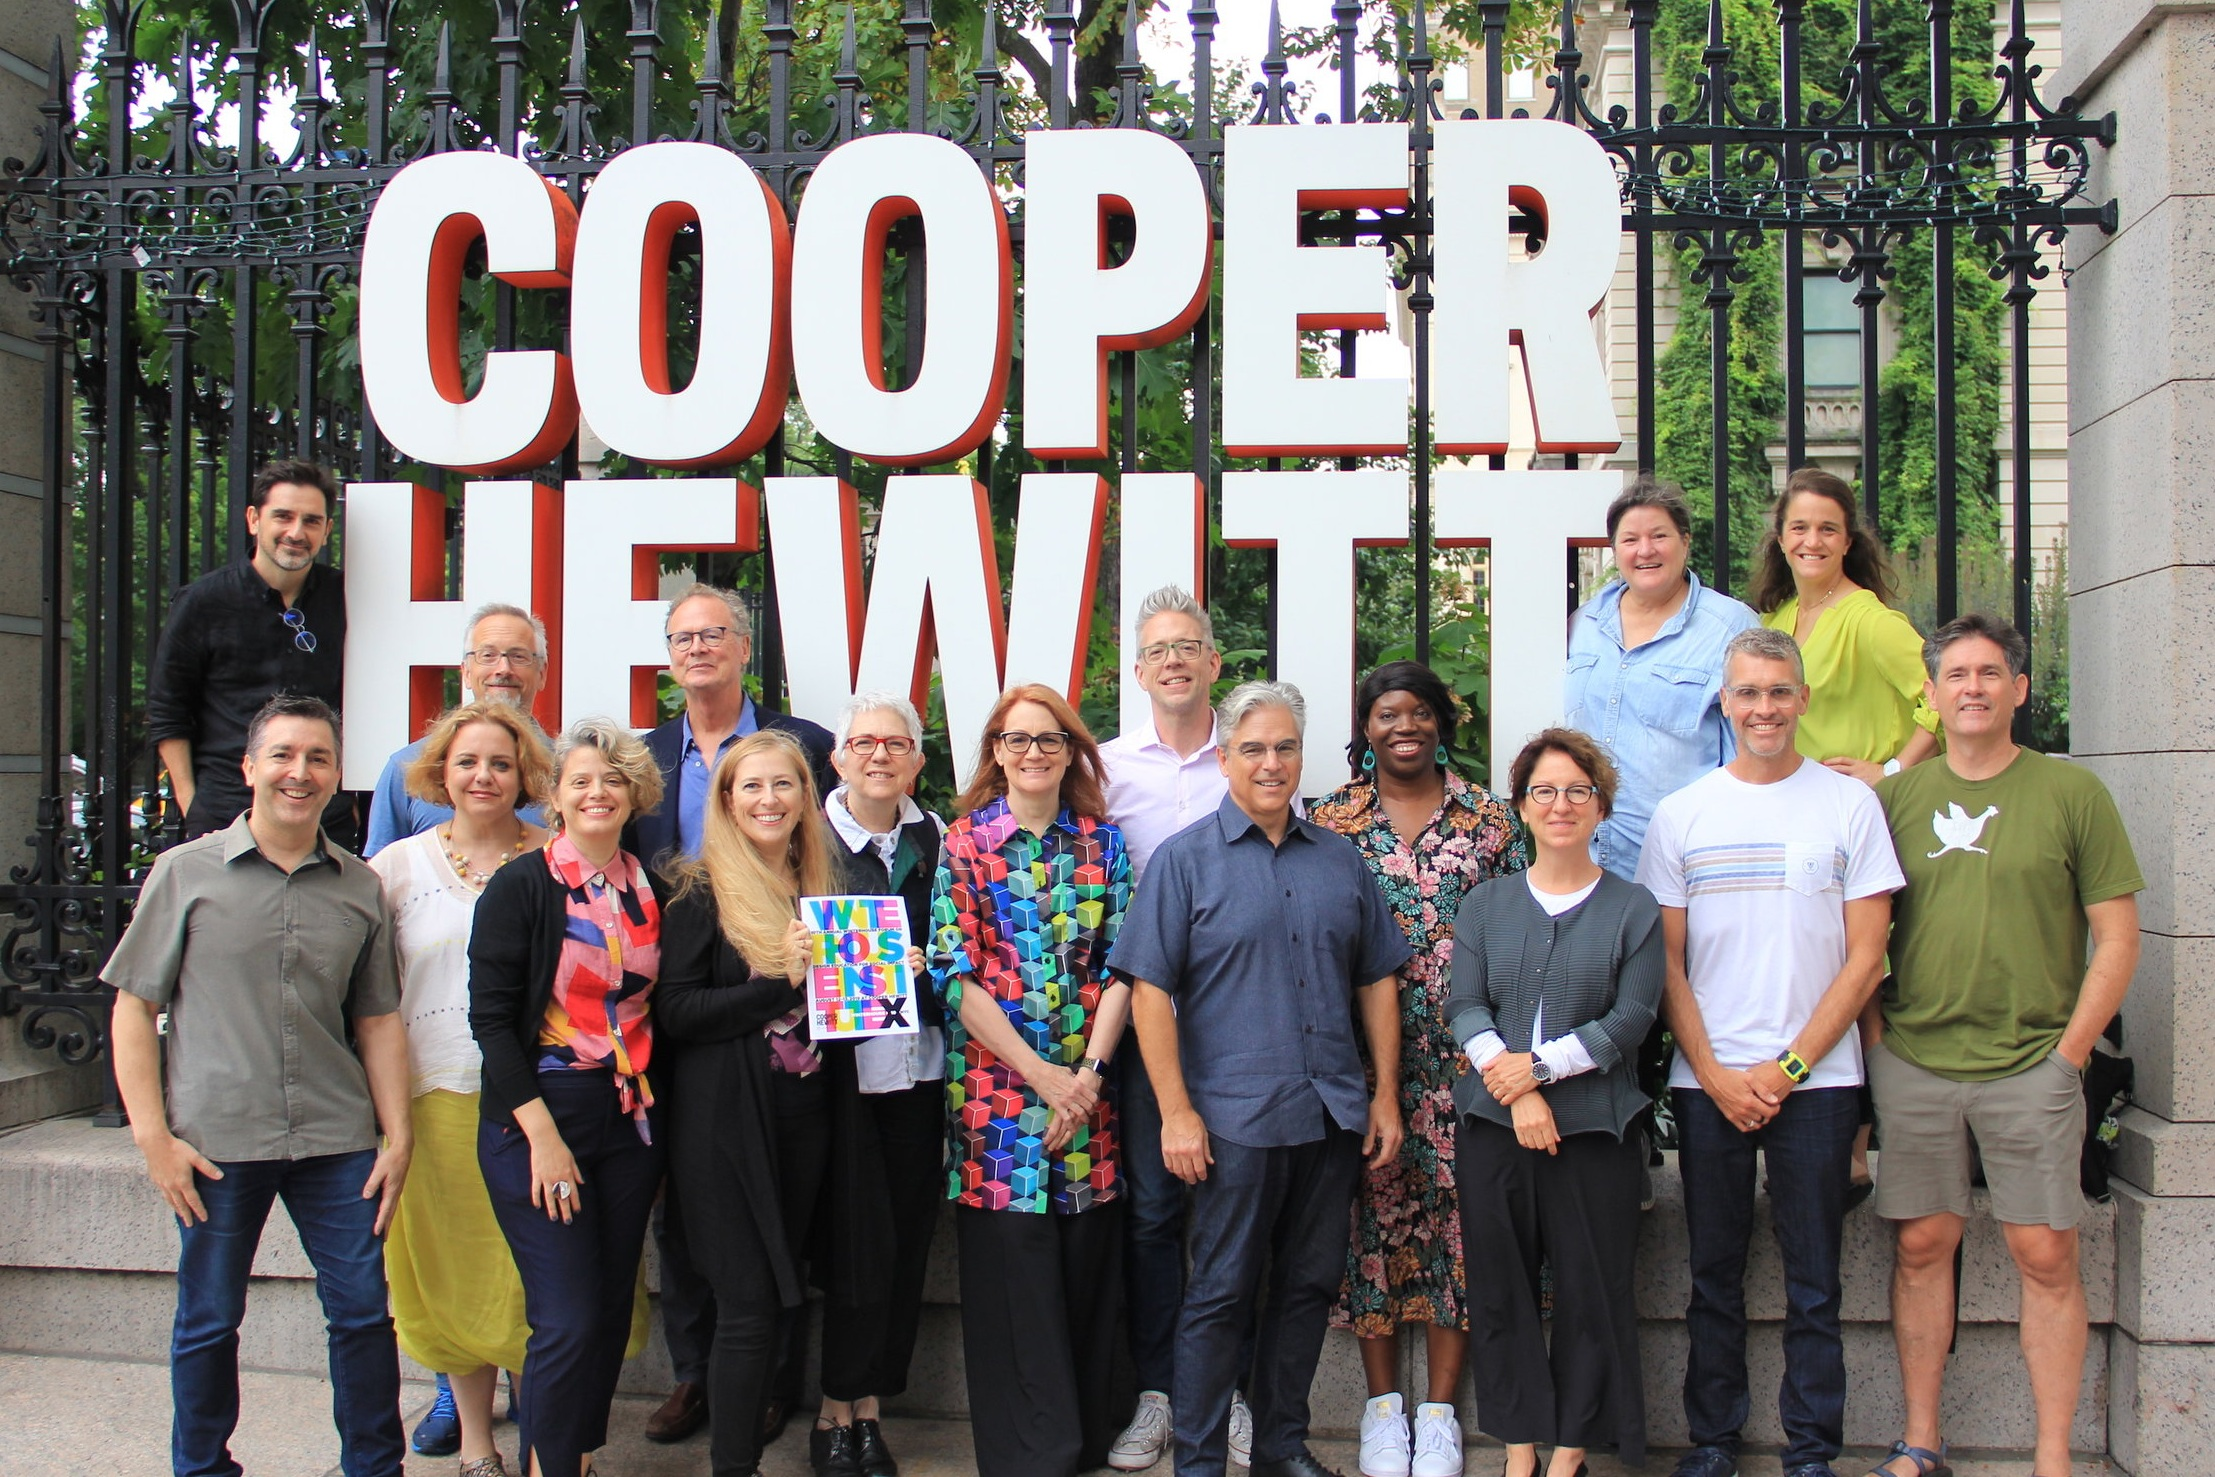 2019 Winterhouse Institute Advisory Council members at Cooper Hewitt